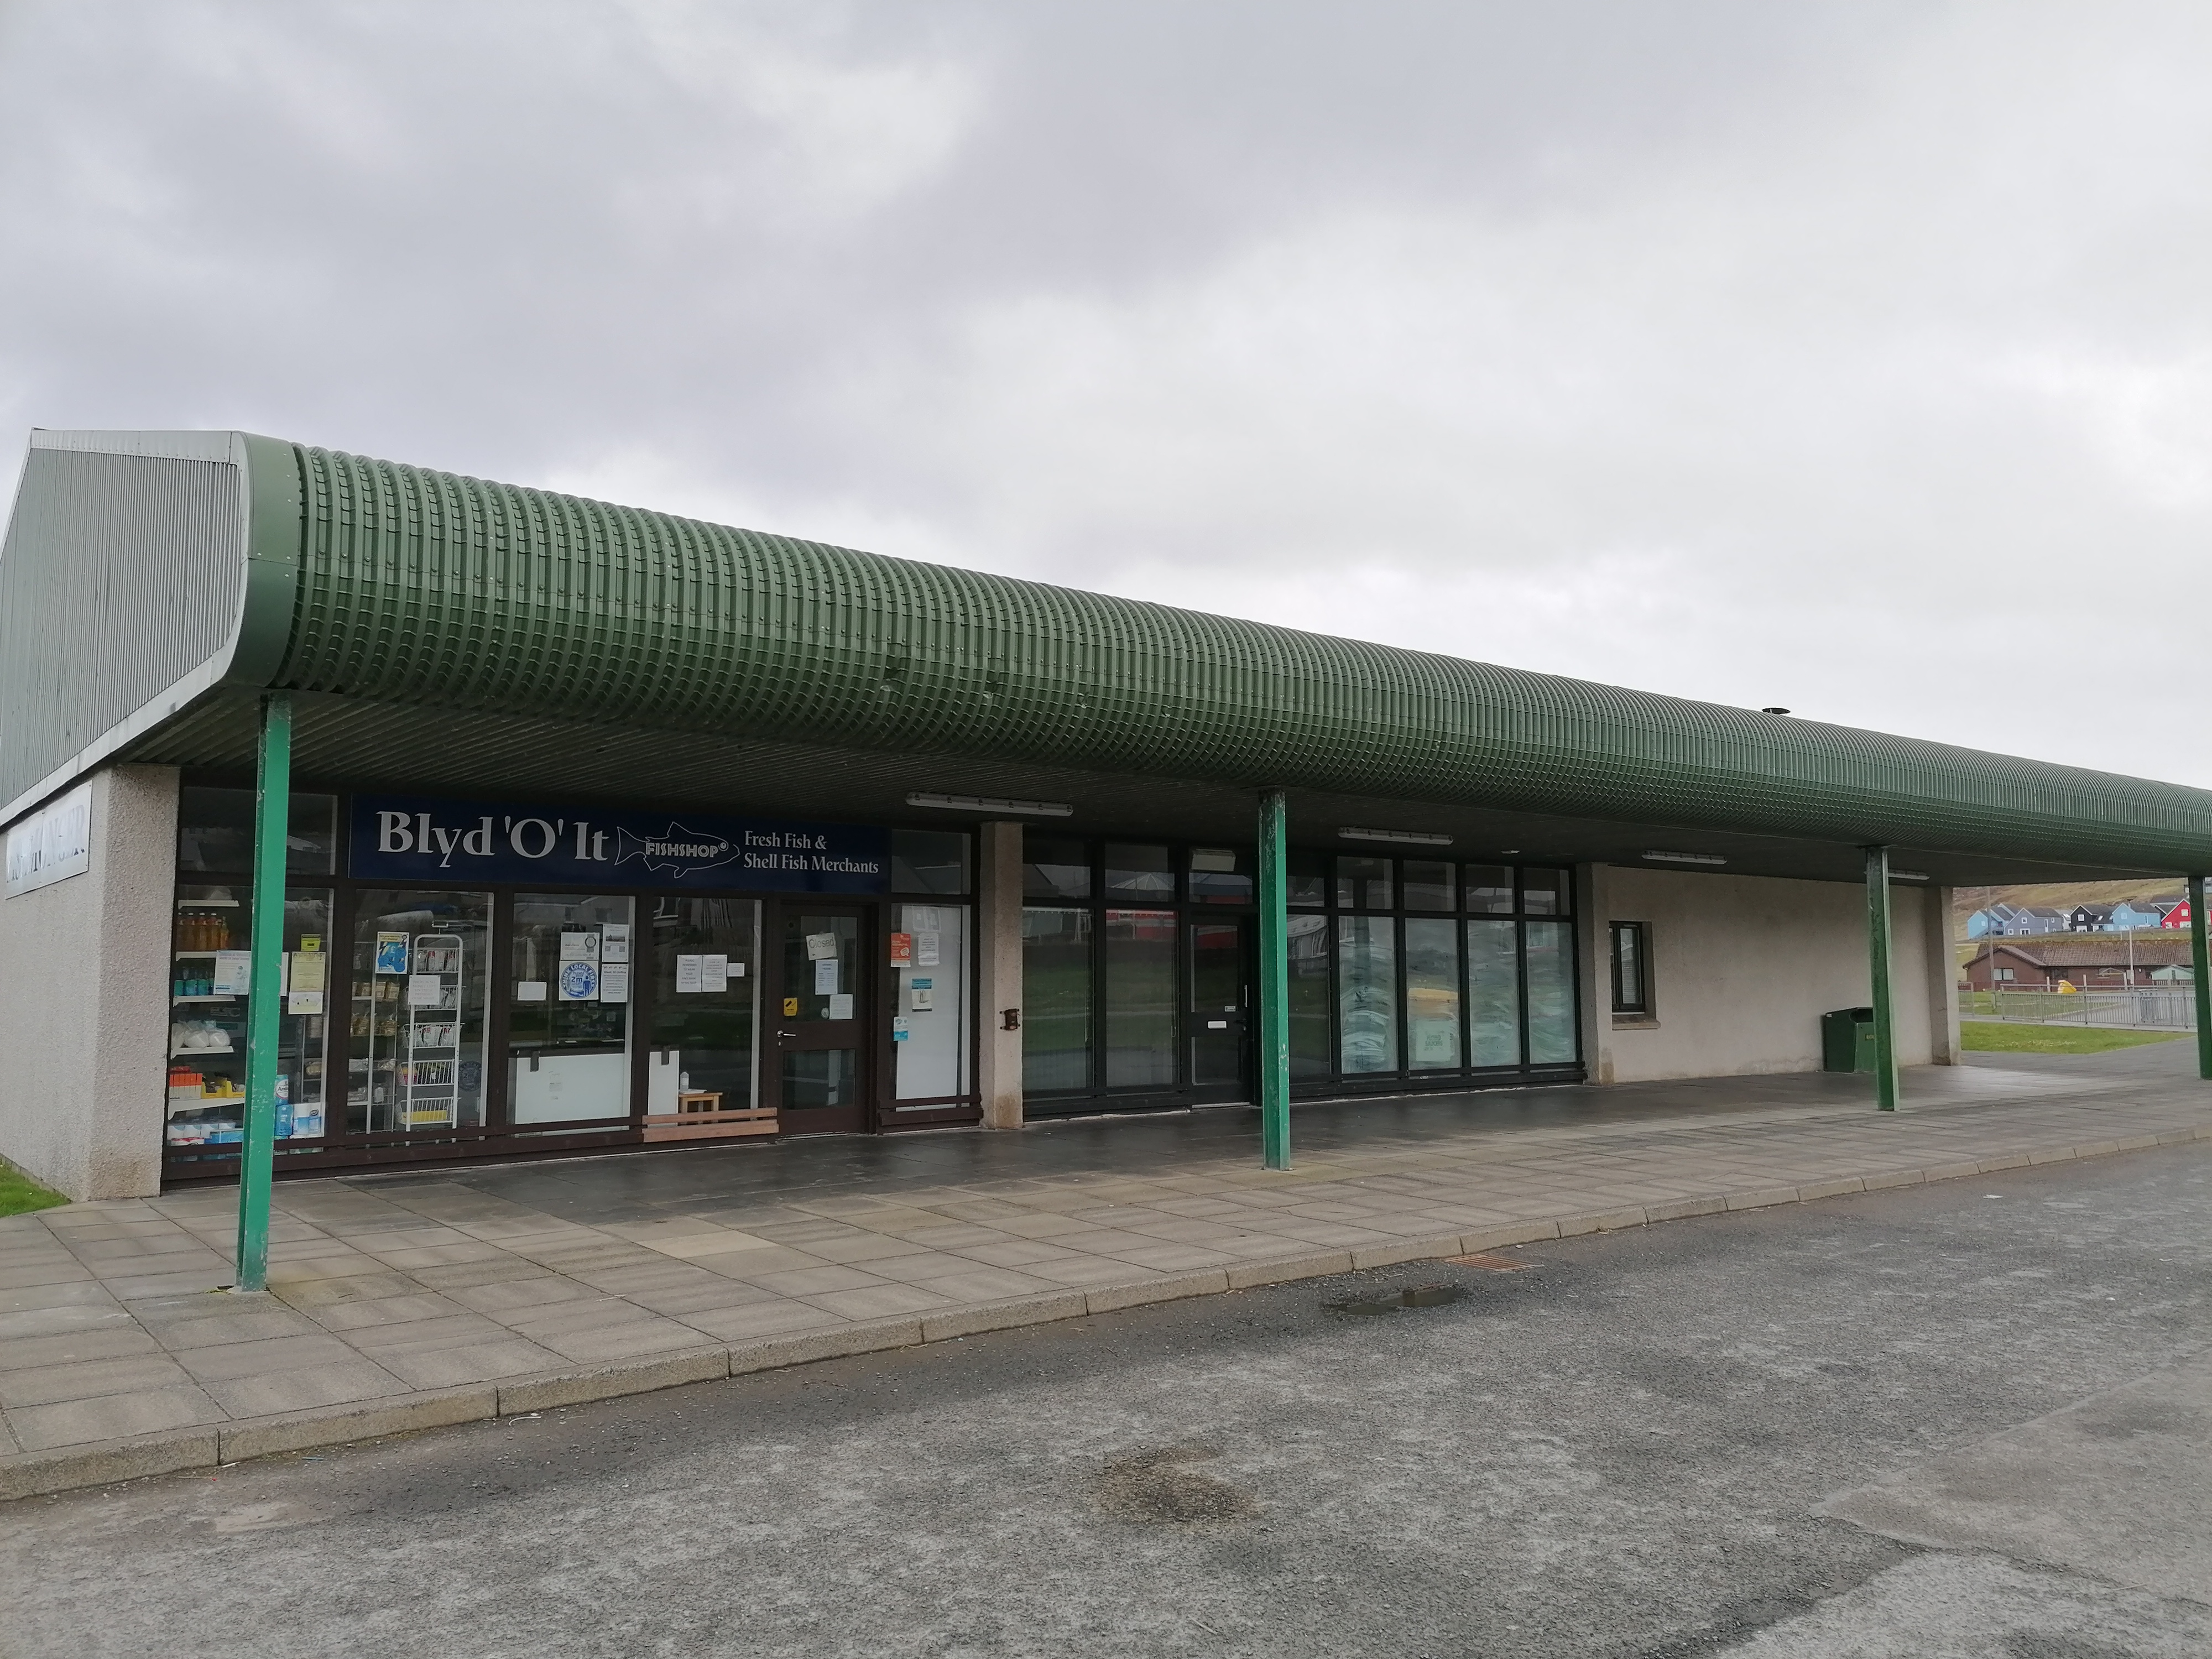 Demand prompts service station to accelerate plans for butcher's shop